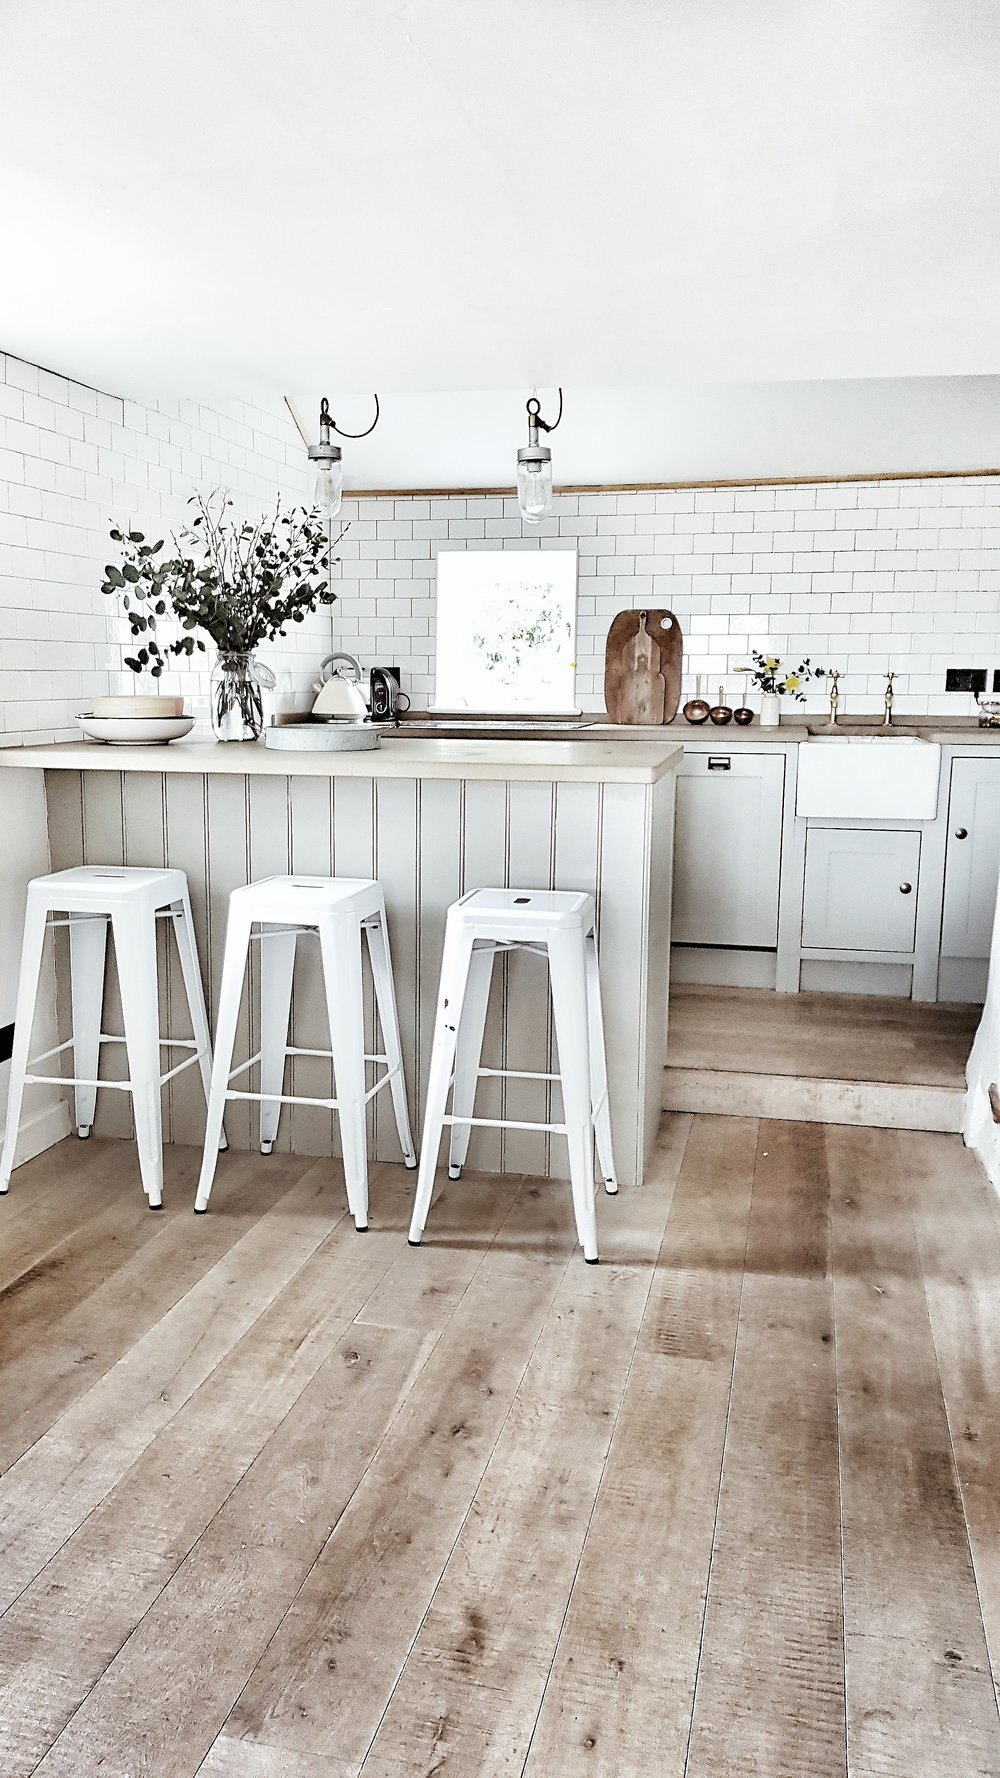 White metro tiles on the walls give the kitchen a contemporary feel that works with the medieval bones of the cottage